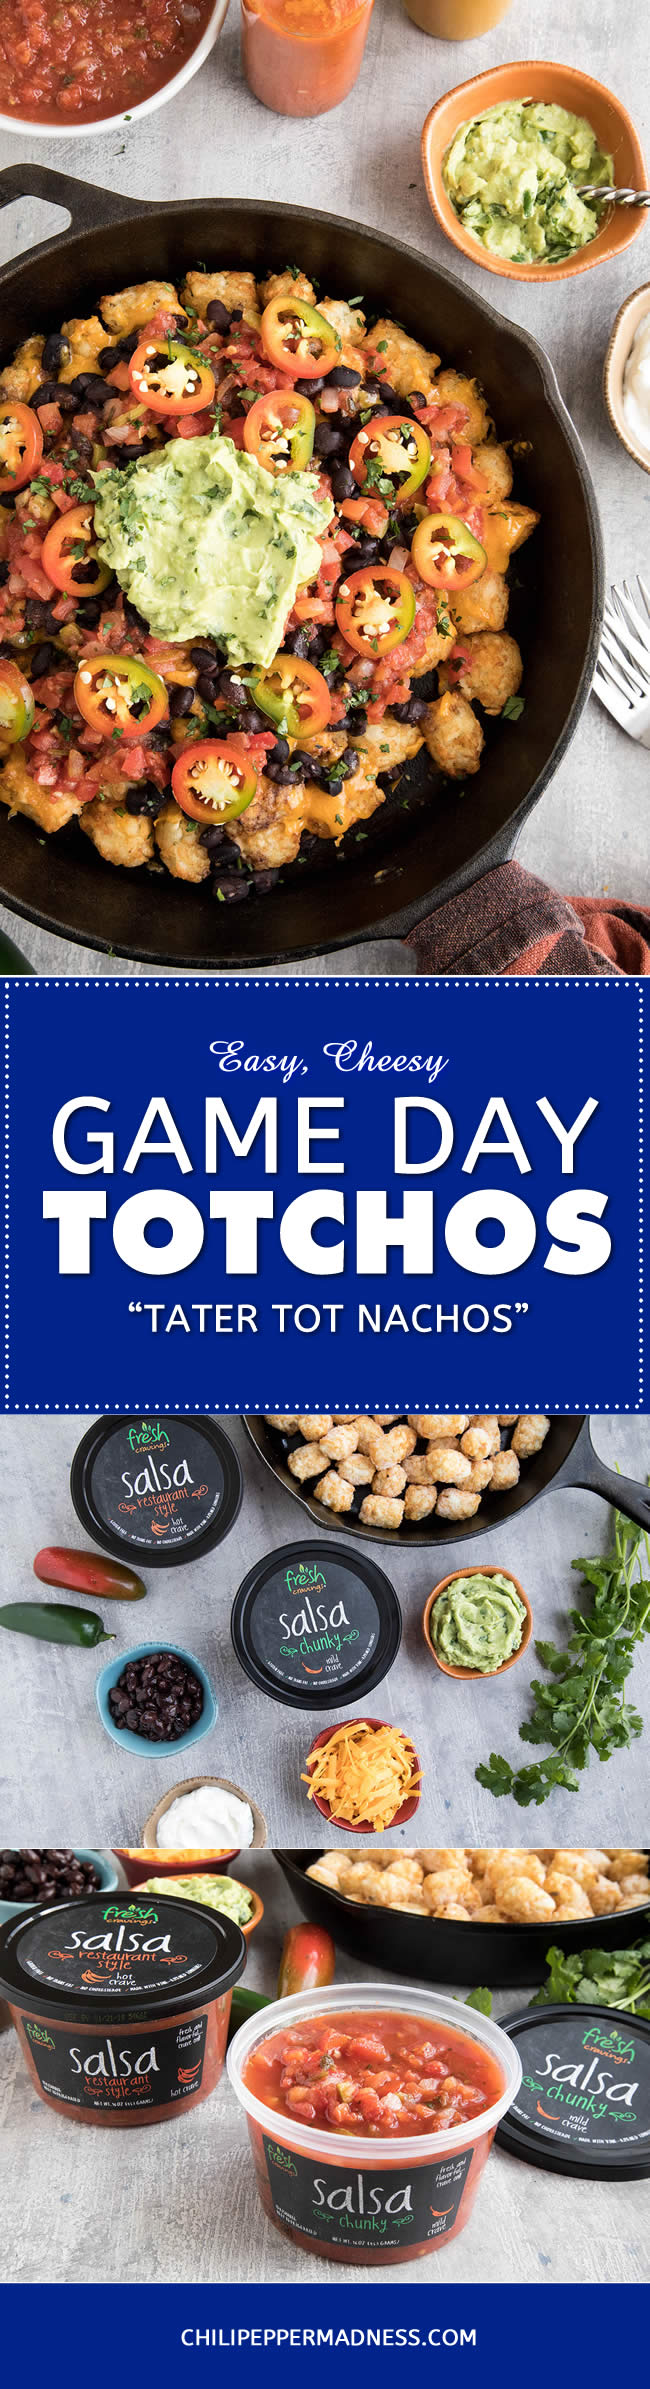 Easy Cheesy Game Day Totchos (Tater Tot Nachos) - Recipe